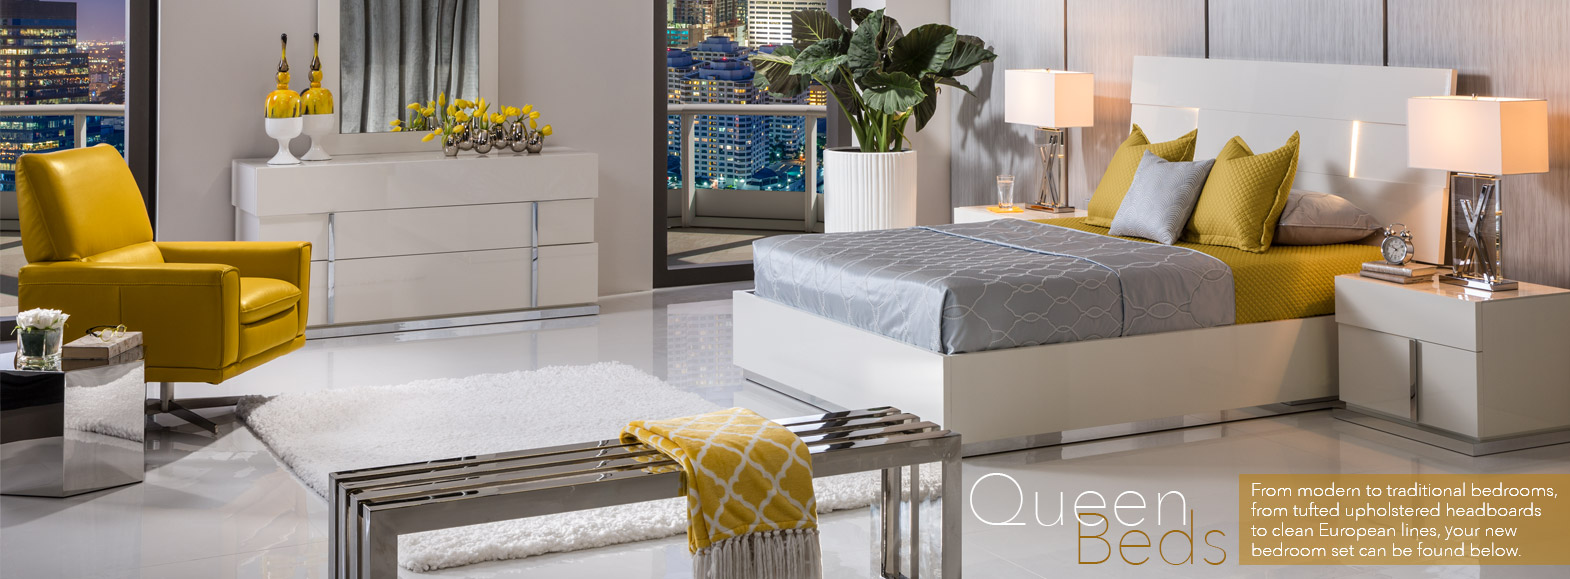 Shop Queen beds From modern to traditional bedrooms, from tufted upholstered headboards to clean European lines, your new bedroom set can be found below.